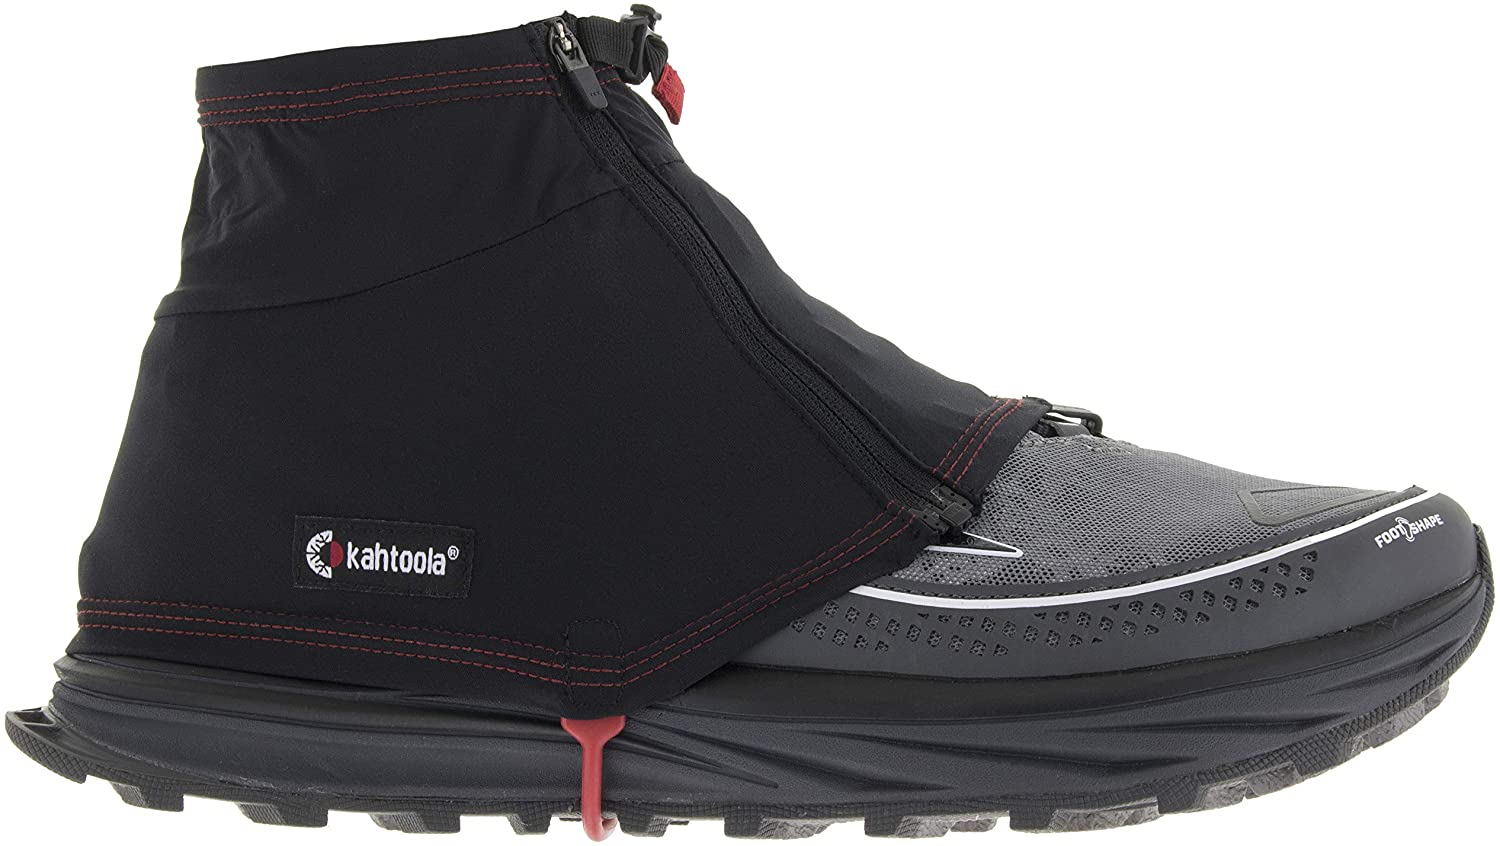 The Kahtoola Instagaiter is one of the best gaiters for trail running.